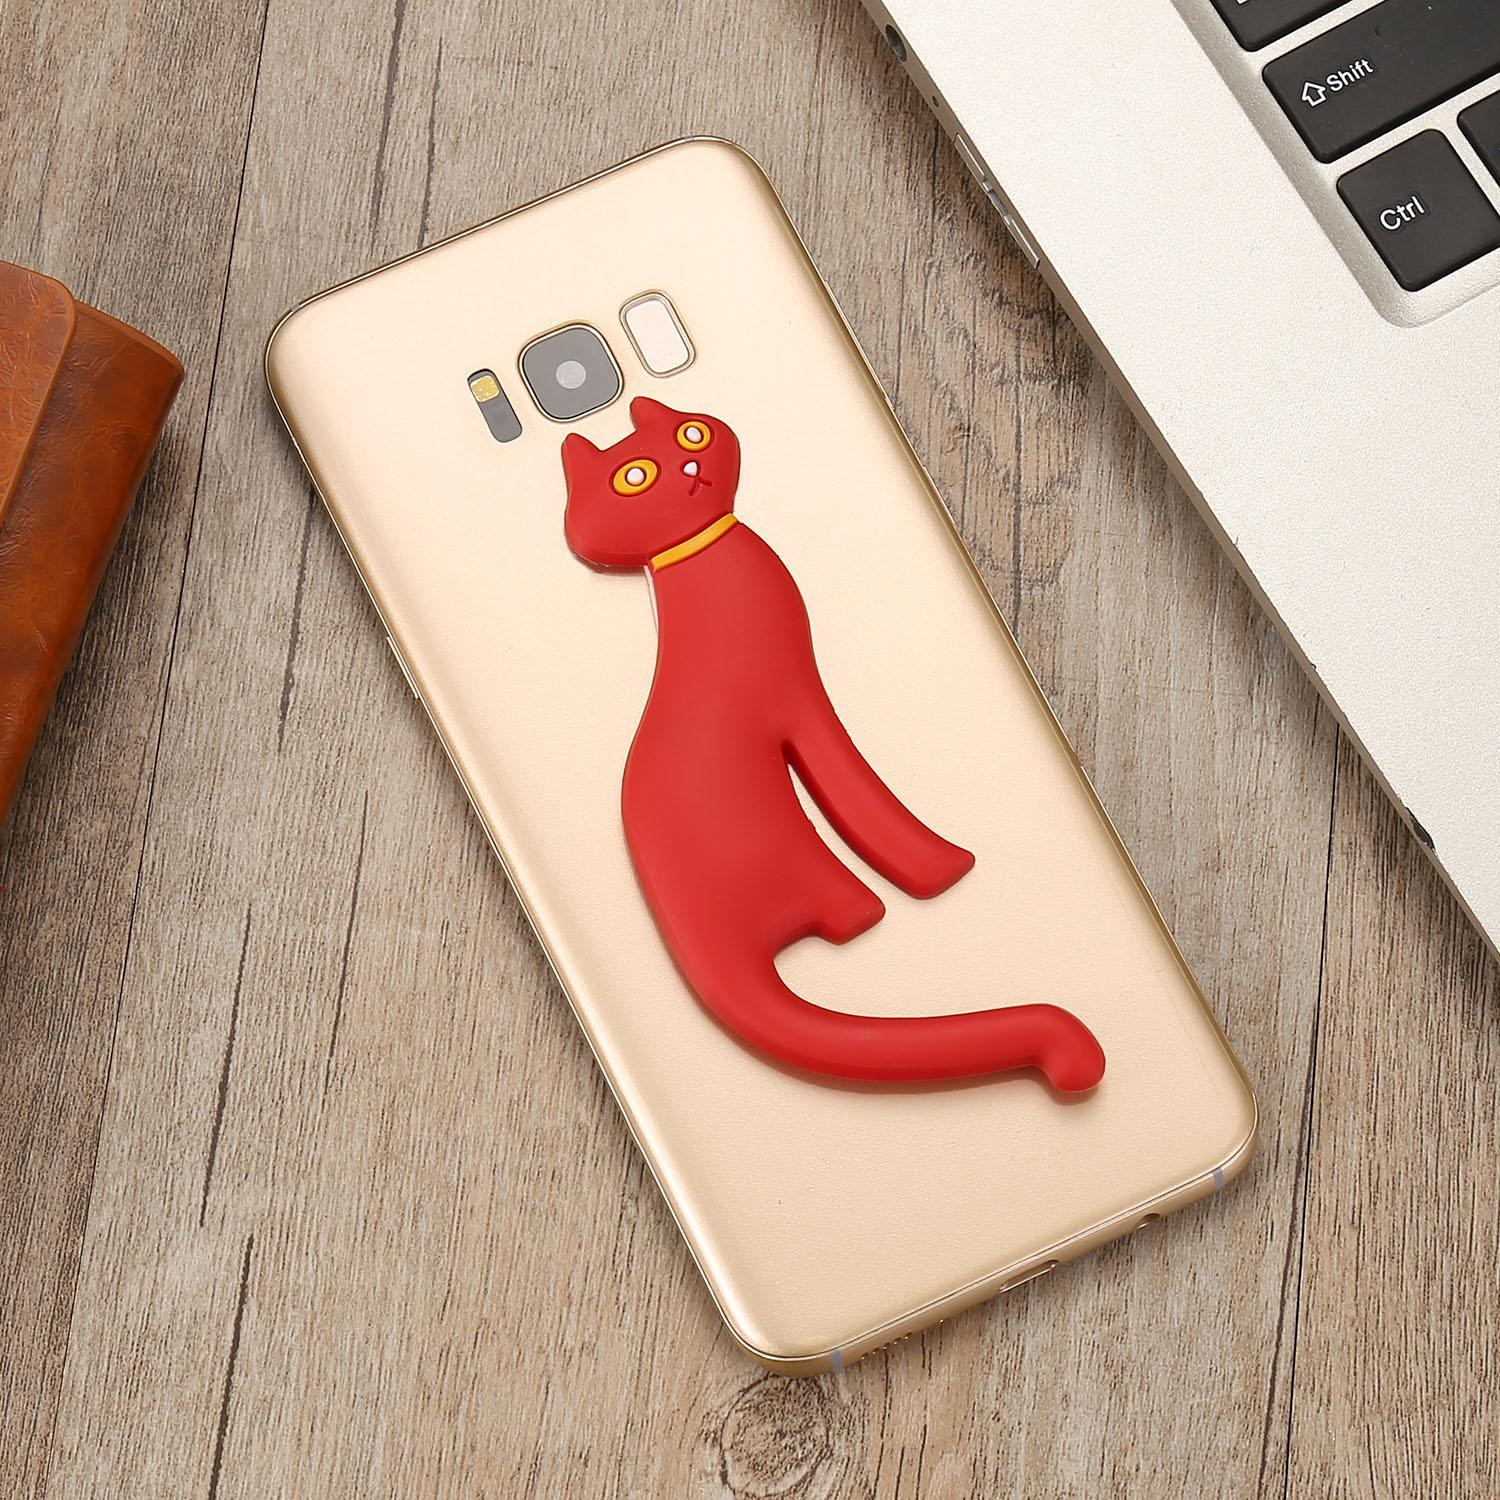 Cute Cat Silicone Phone Stand Mount Holder Stent Caroj - image 4 of 5